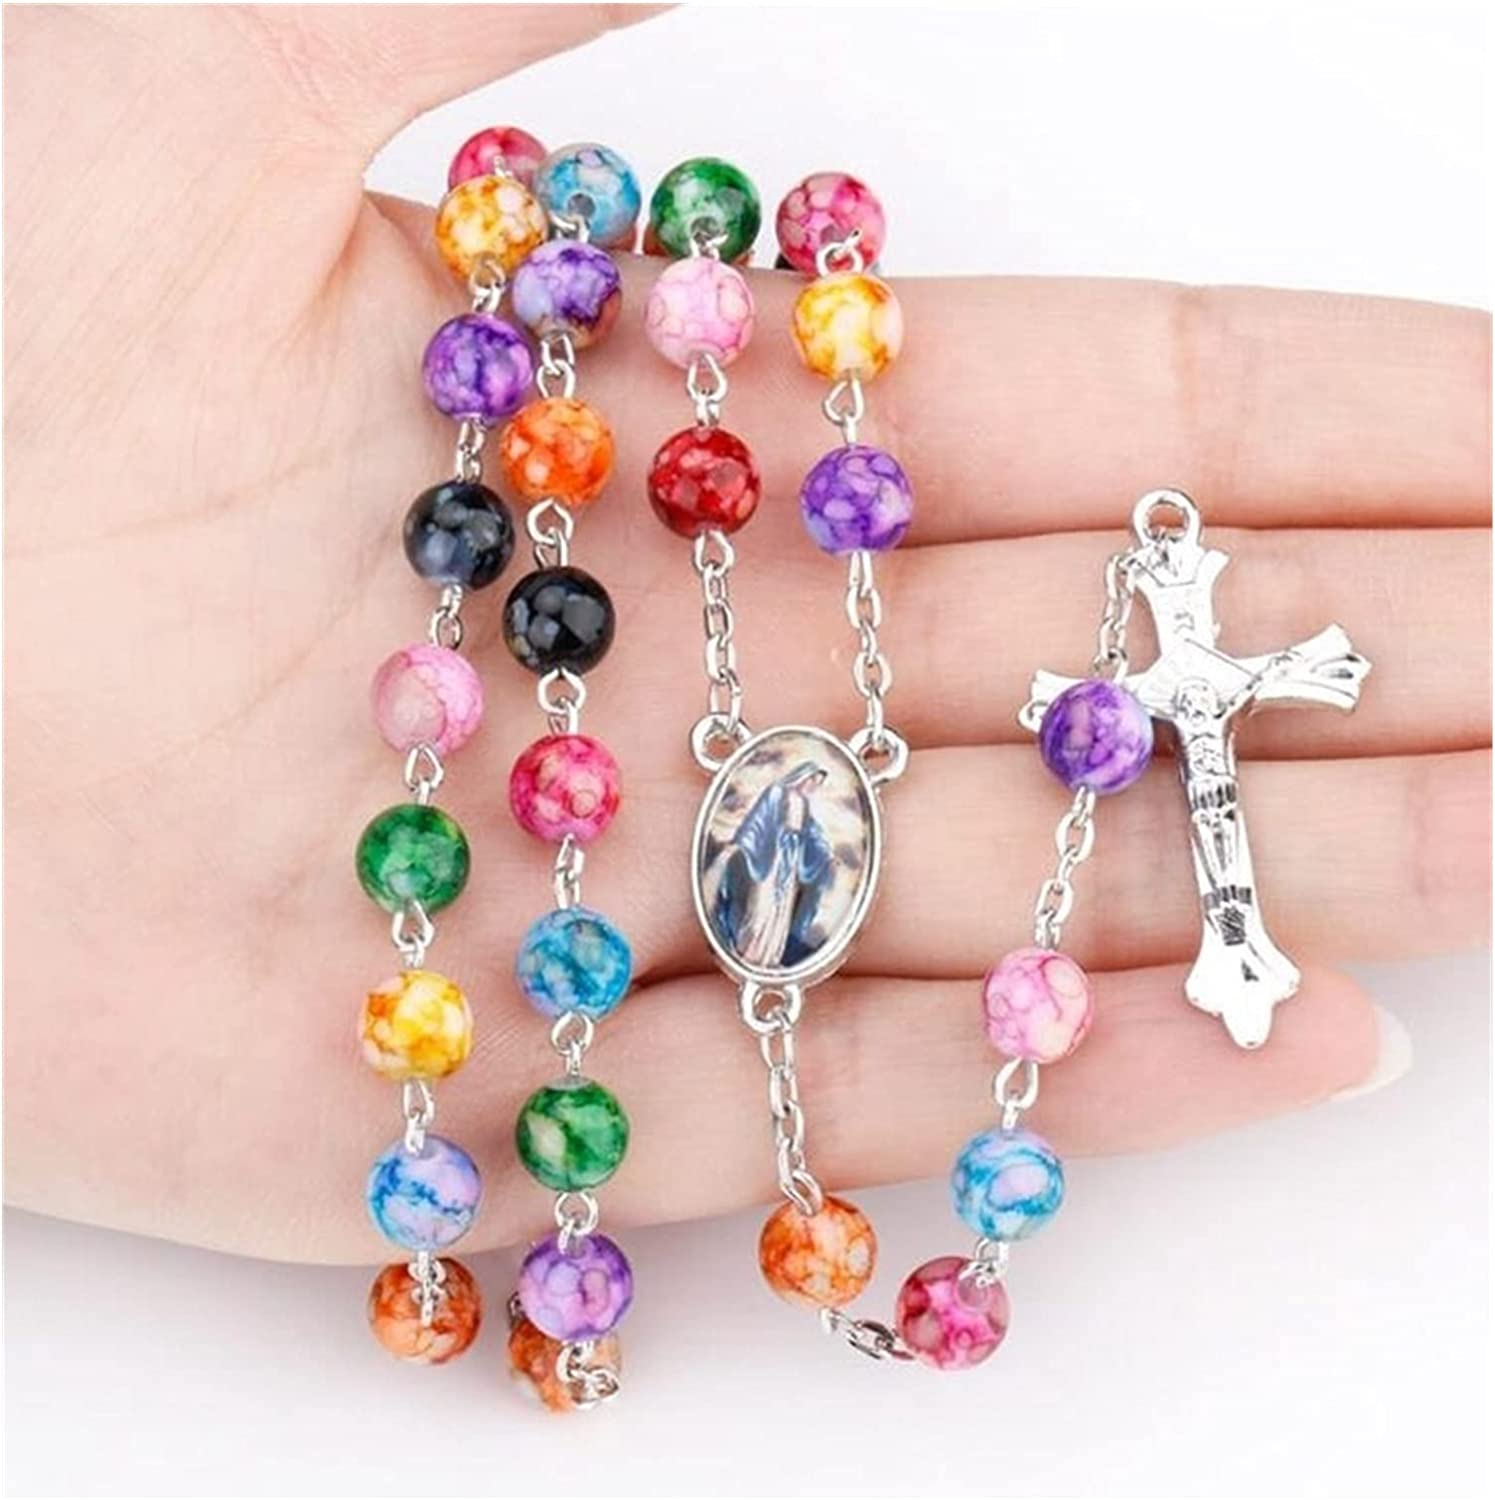 JIAQ Hip Hop Exquisite Colored Beads Catholic Our Lady Rosary Necklace Religious Jesus Cross Necklace (Metal Color : Multicolor)